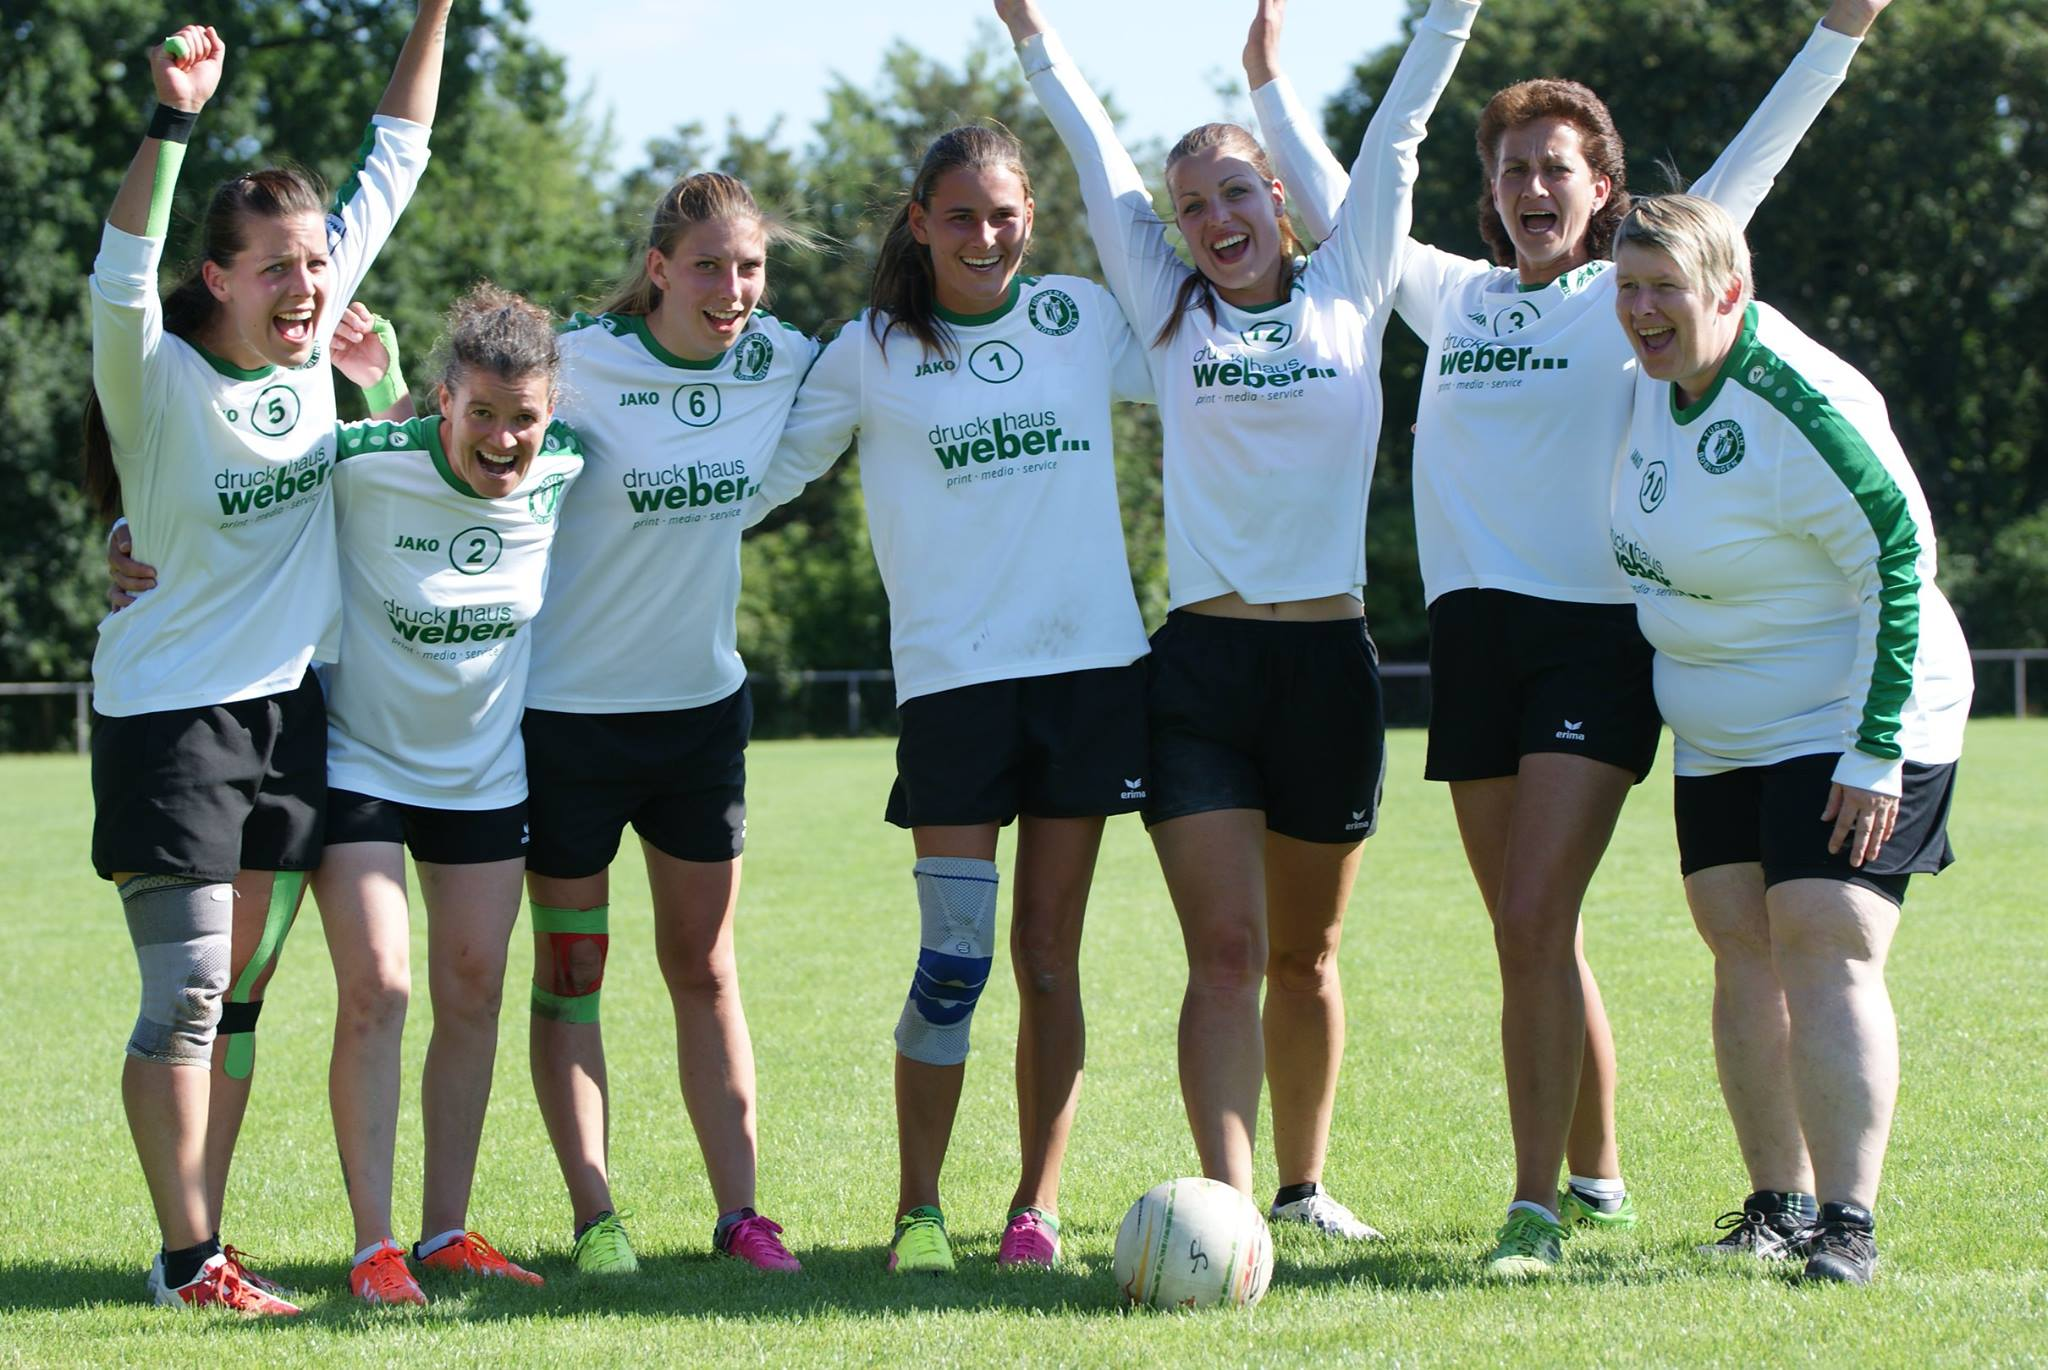 Faustball Frauen-Team jubelt